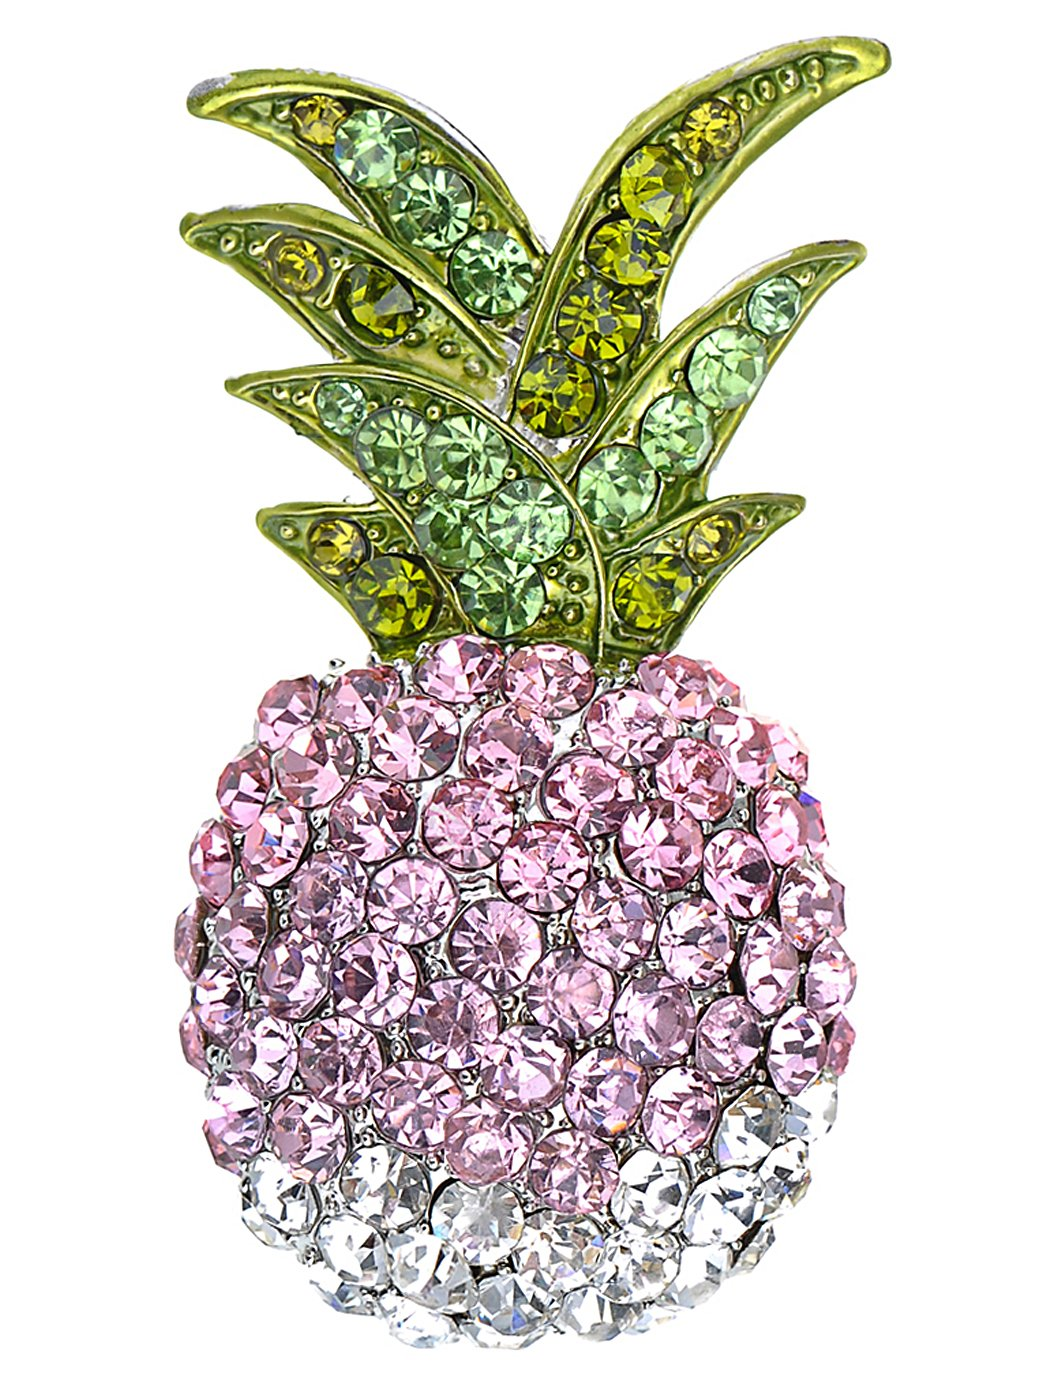 Alilang Silvery Tone Ombre Colored Rhinestone Tropical Pineapple Fruit Brooch Pin